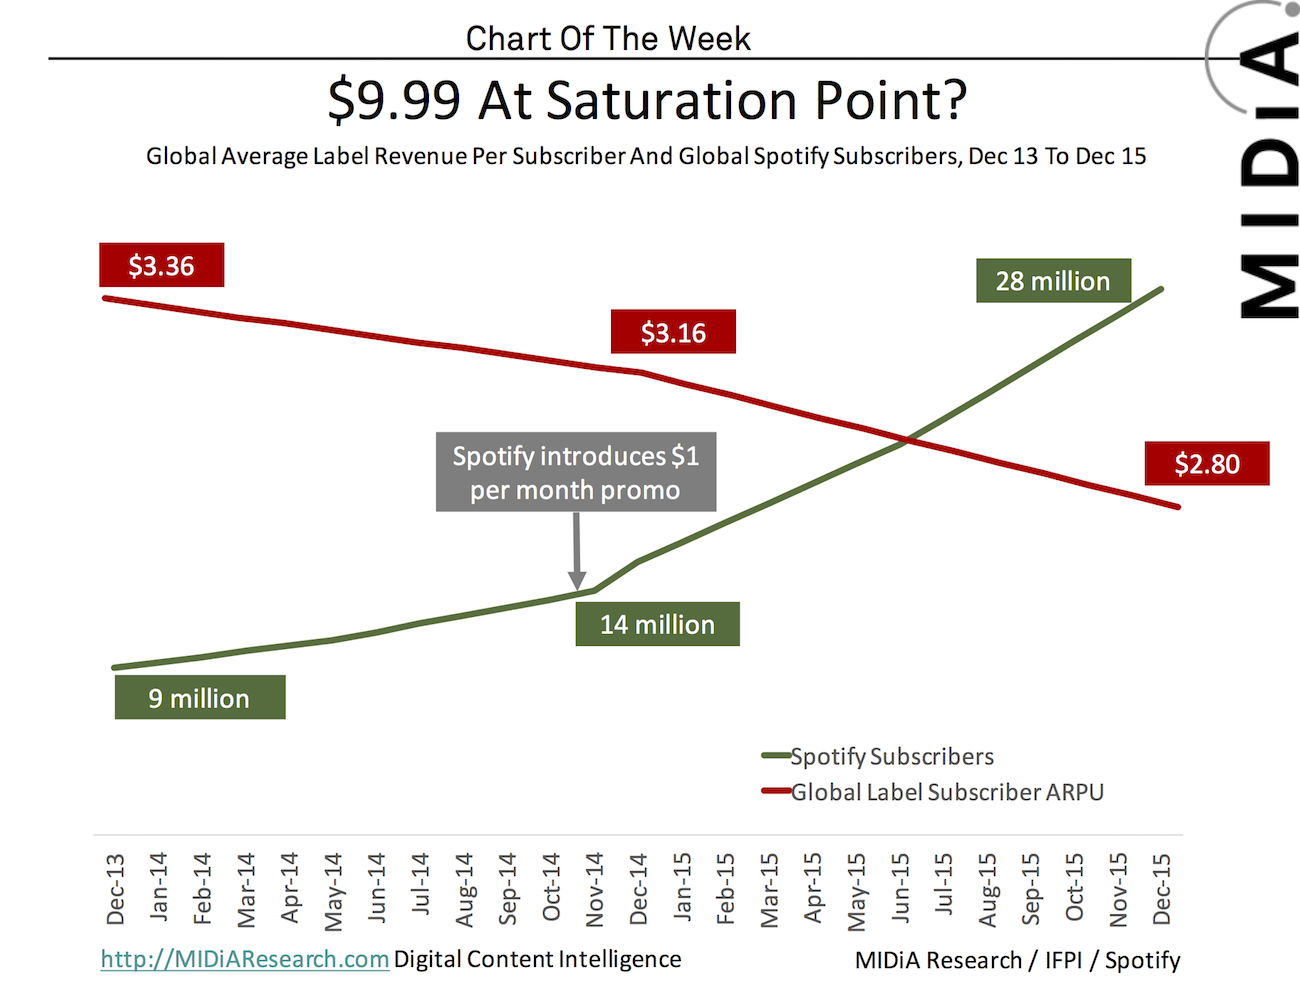 Cover image for MIDiA Chart Of The Week: 9.99 Subscriptions At Saturation Point?